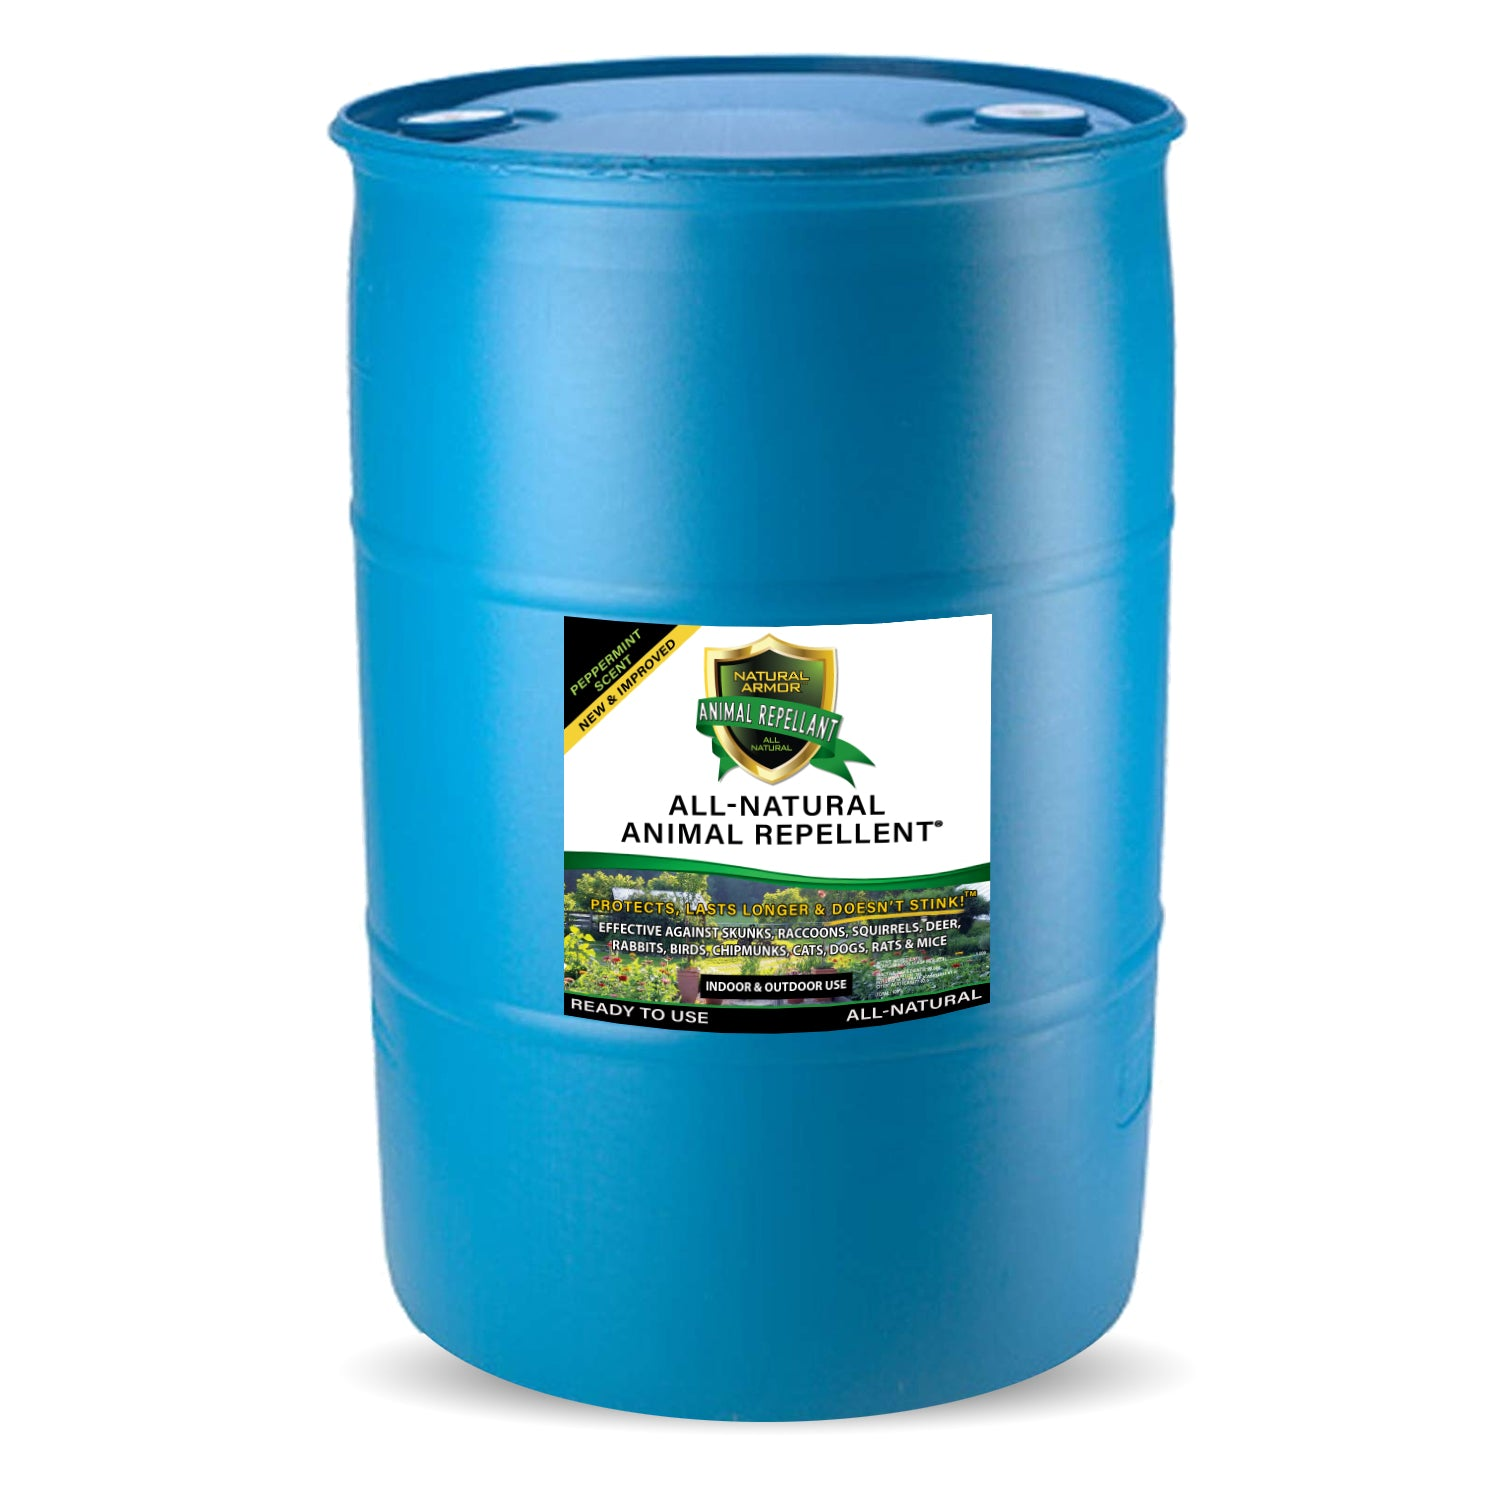 Animal Repellent –– Peppermint Scent (1) 30 GALLON DRUM